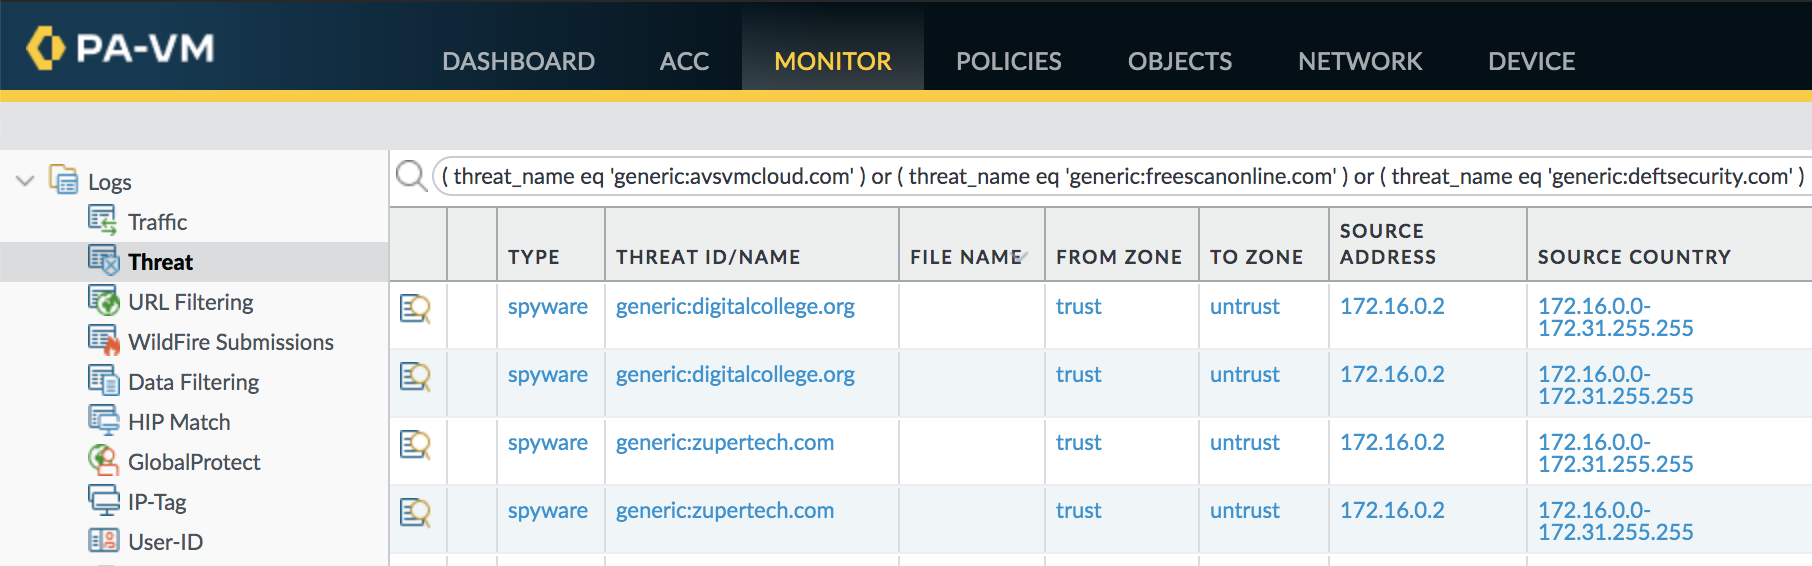 Threat logs can expose DNS queries that indicate SUNBURST command and control traffic.